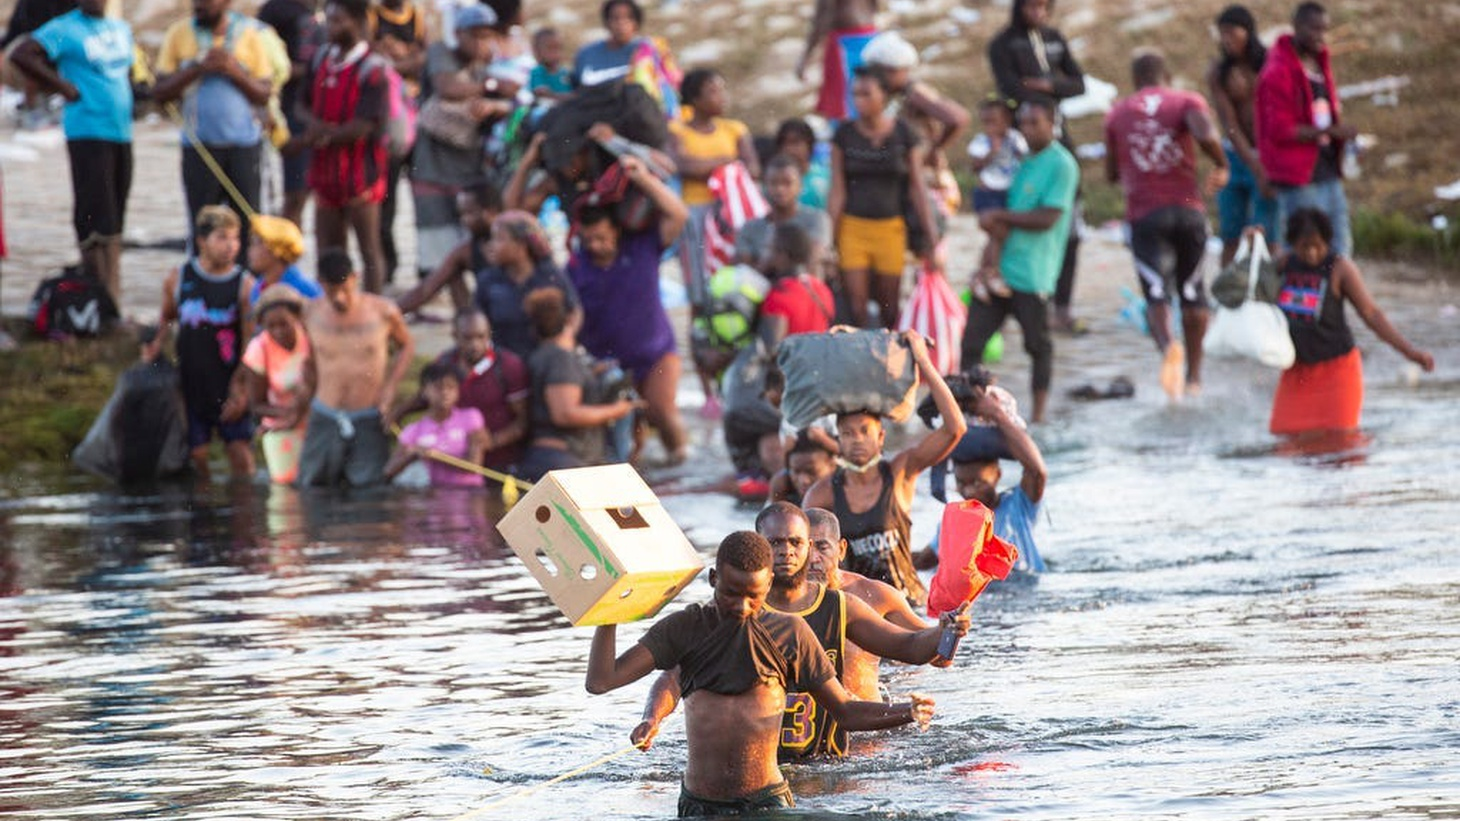 Haitian migrants cross the Rio Grande south into Ciudad Acuna from Del Rio, Texas, as they leave the migrant encampment underneath the Del Rio International Bridge after concerns of food scarcity and expulsions to Haiti on Monday Sept. 20, 2021.